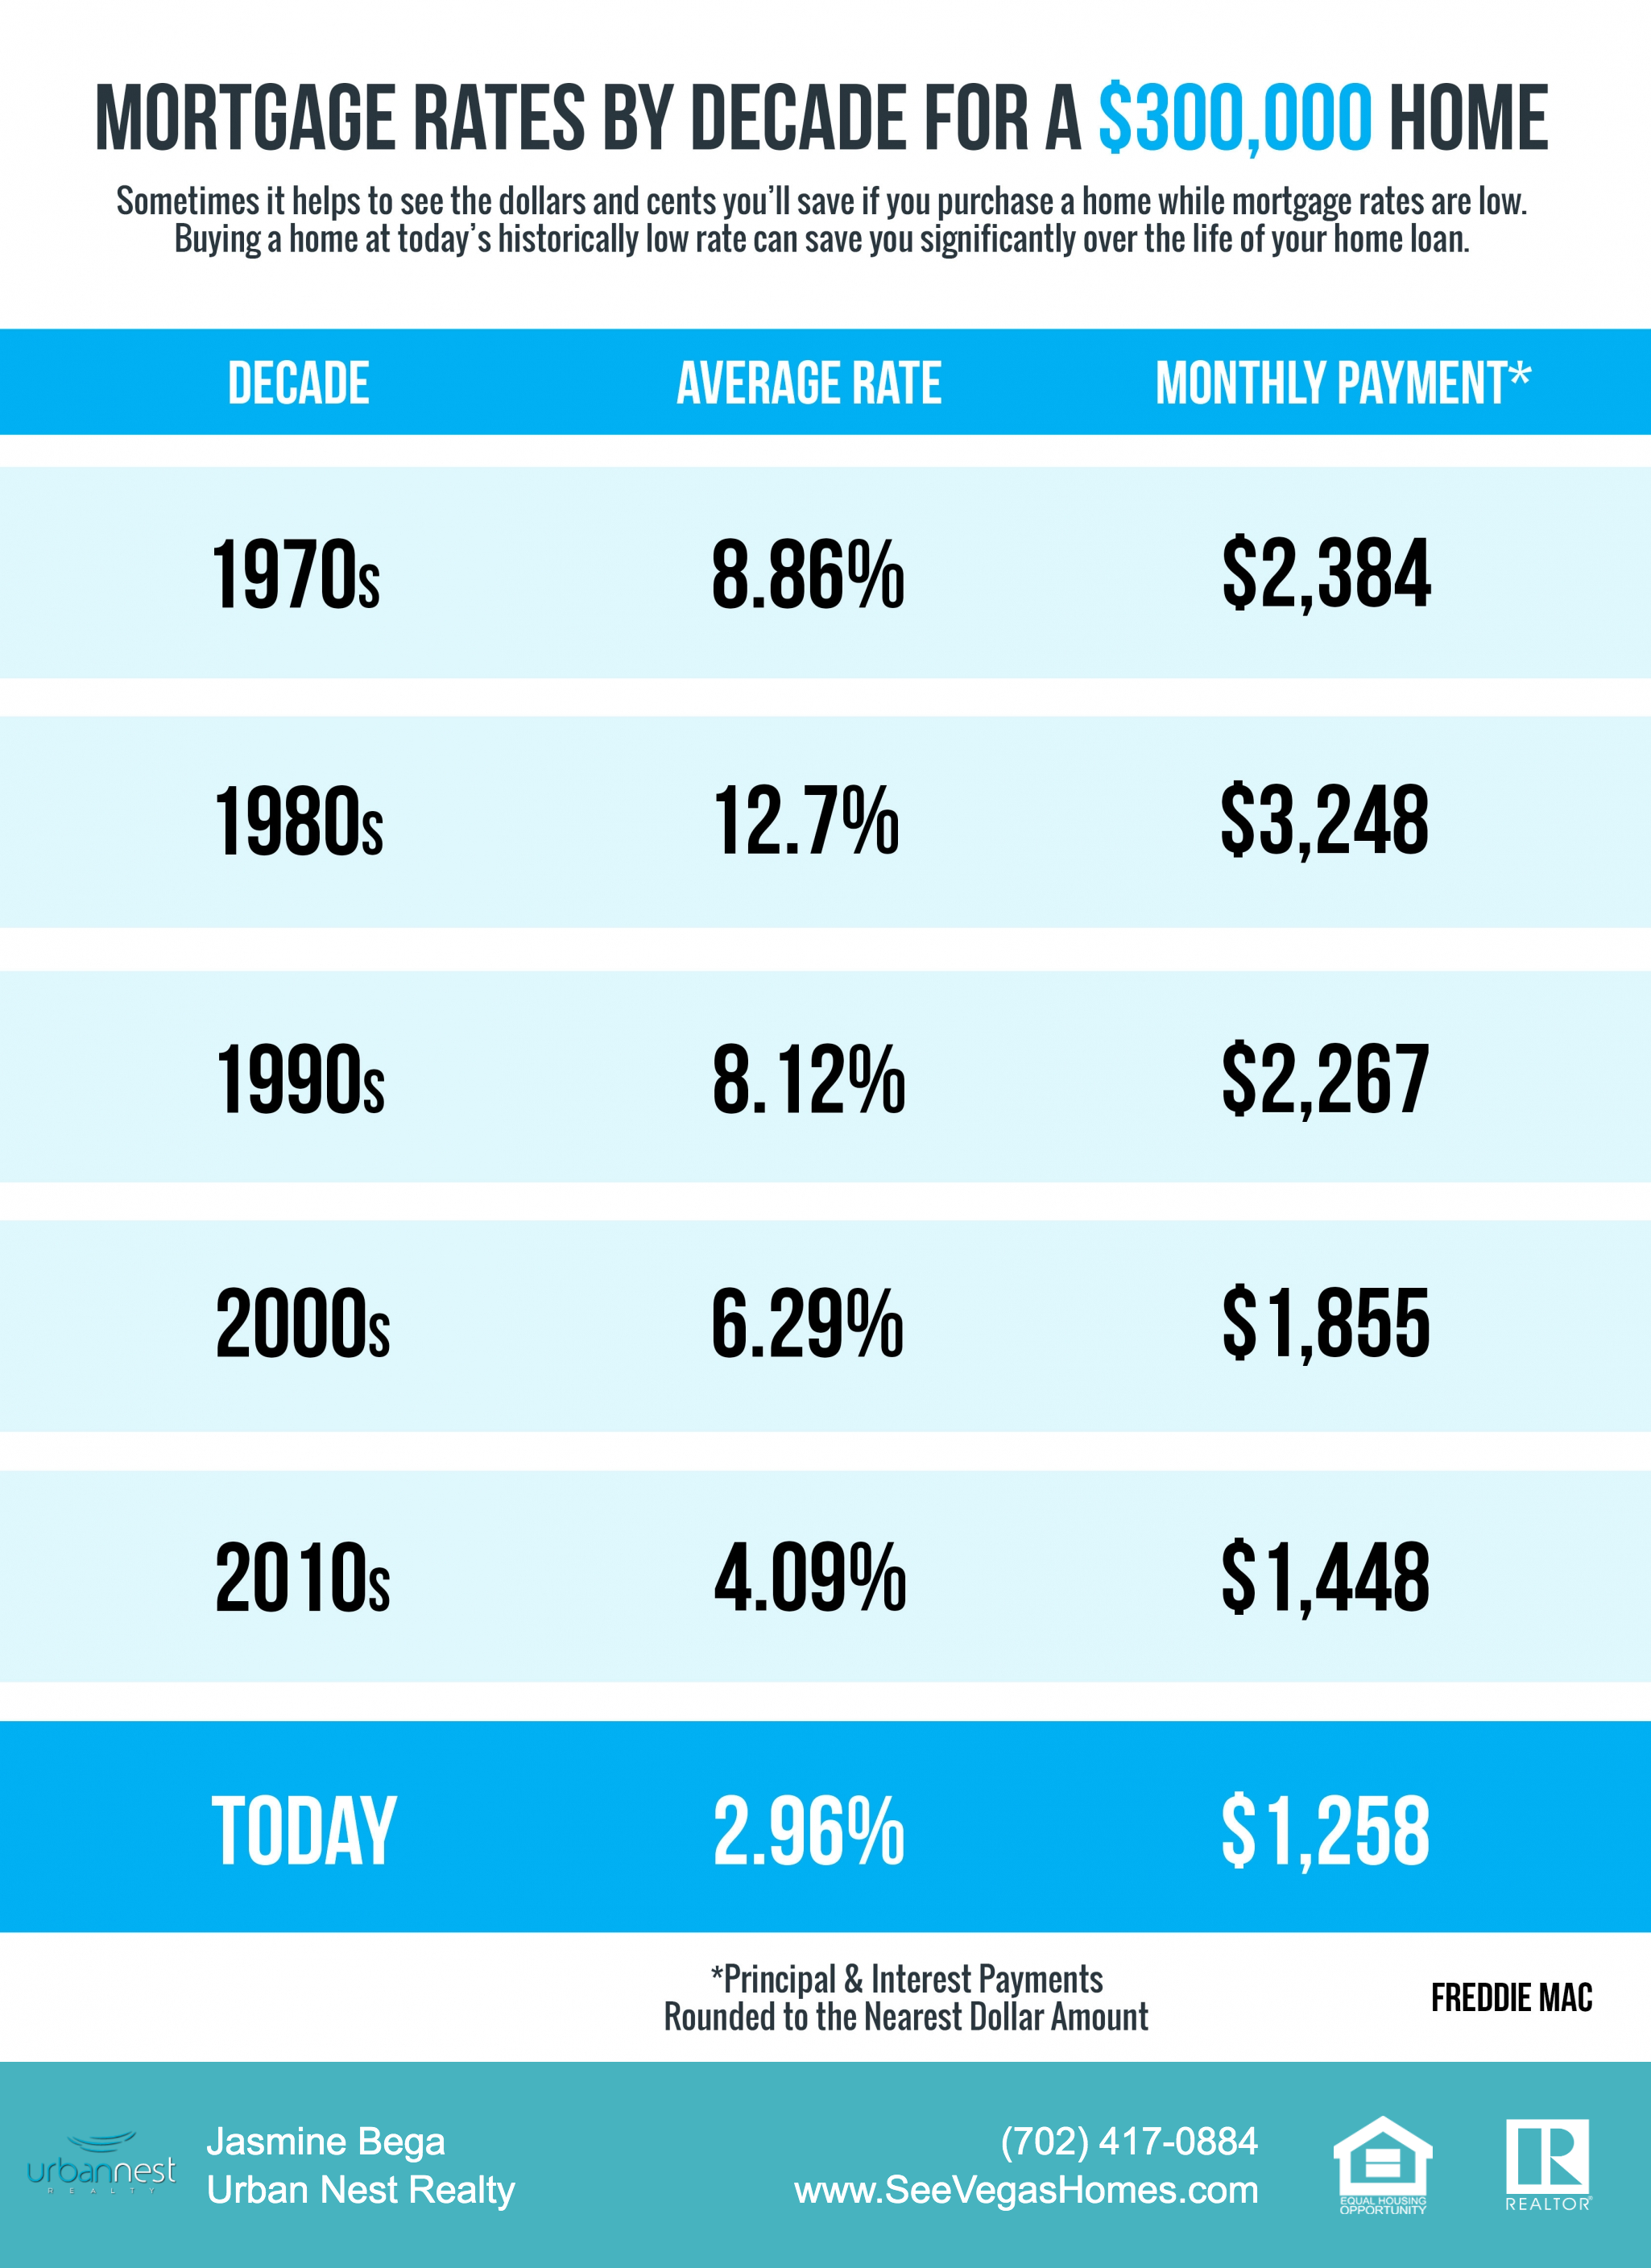 Mortgage Rates & Payments by Decade INFOGRAPHIC SeeVegasHomes